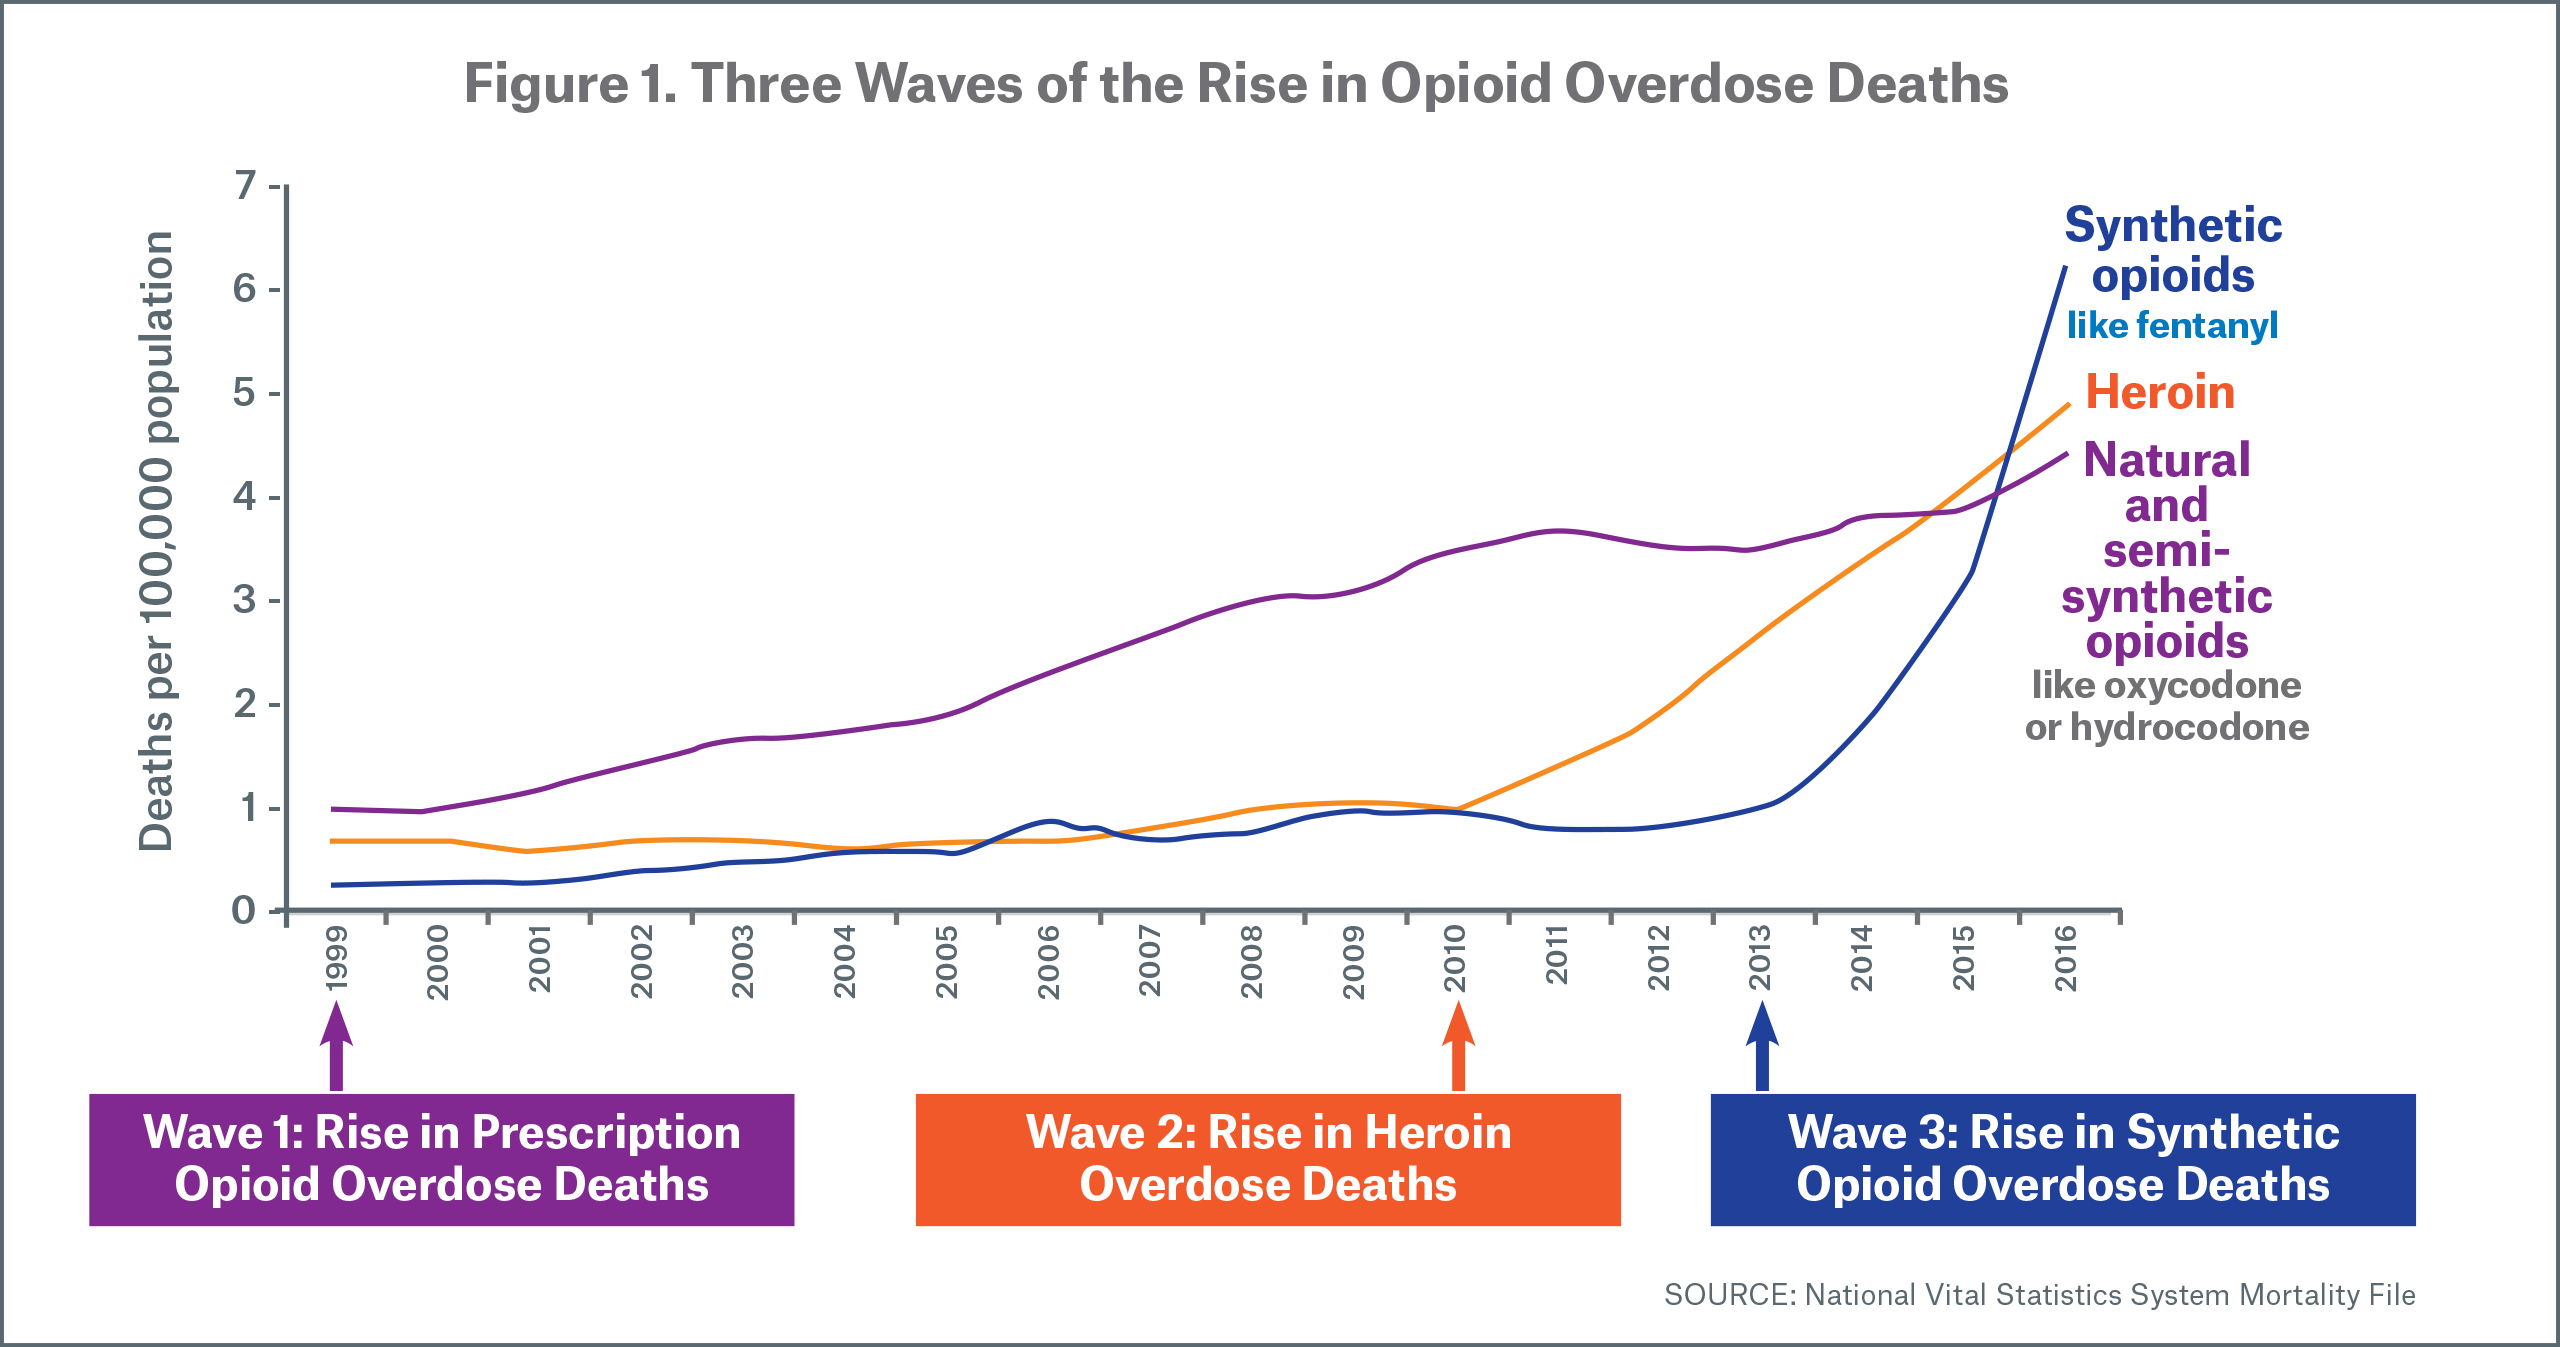 Figure 1 Three Waves of the Rise in Opioid Overdose Deaths